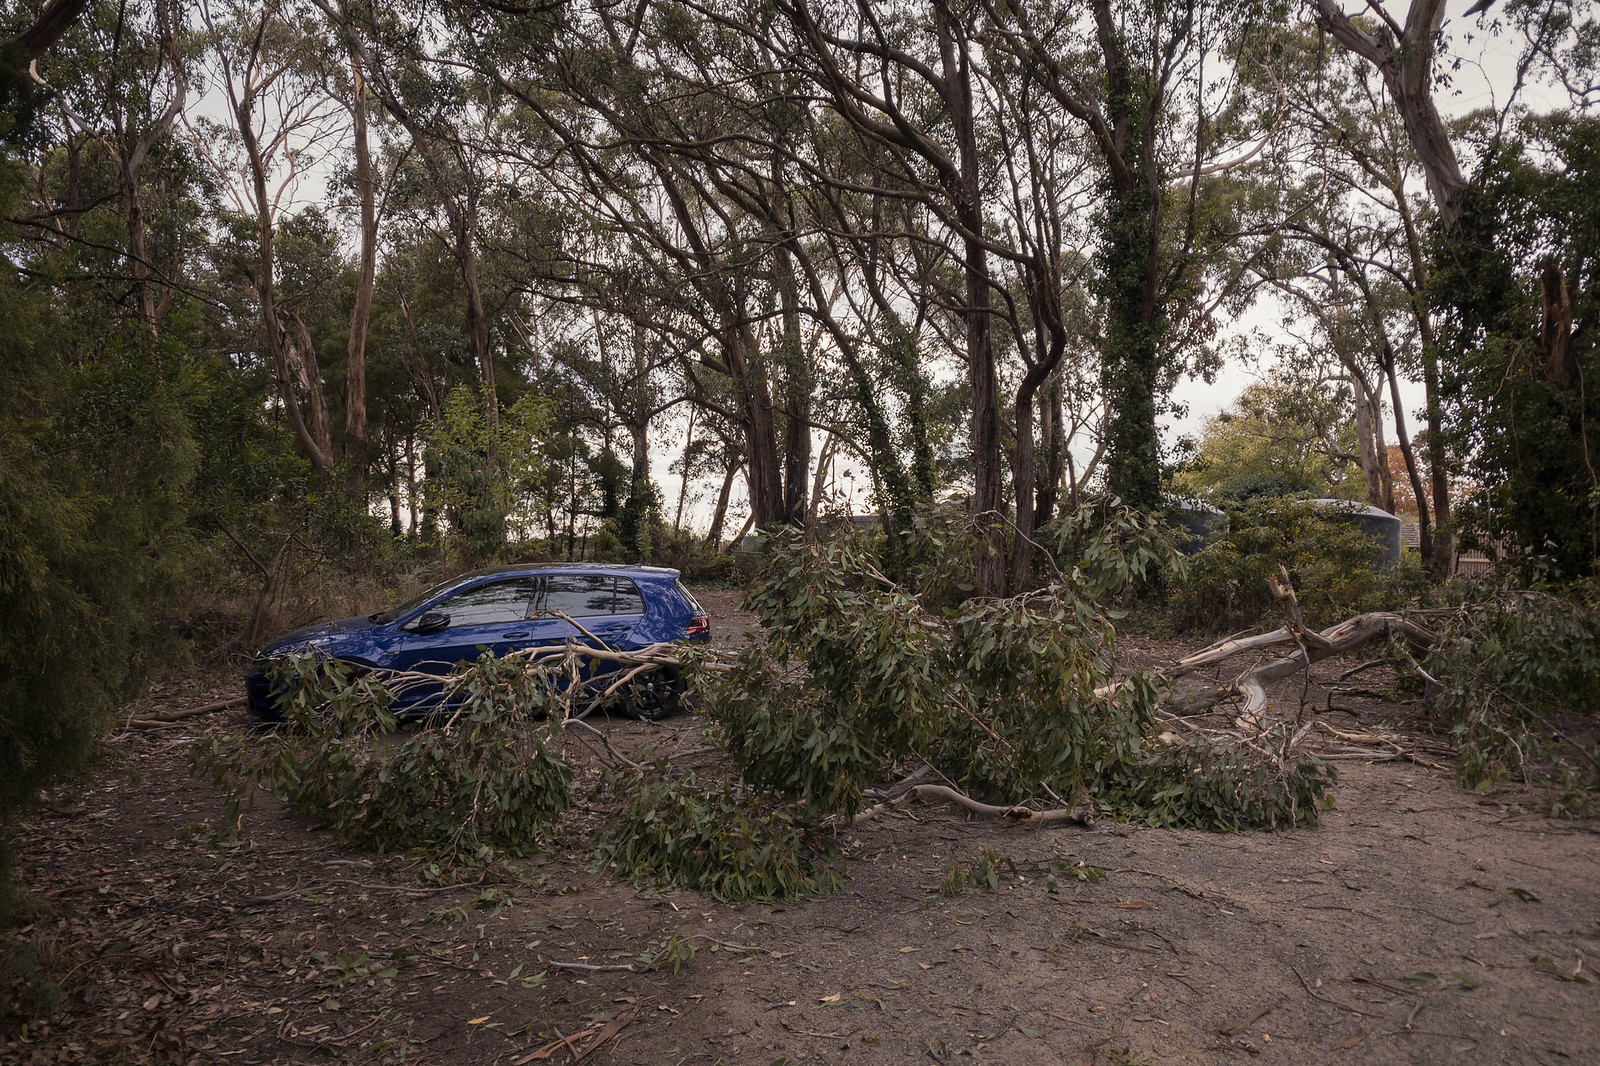 Fallen tree in front of blue car in the Australian bush